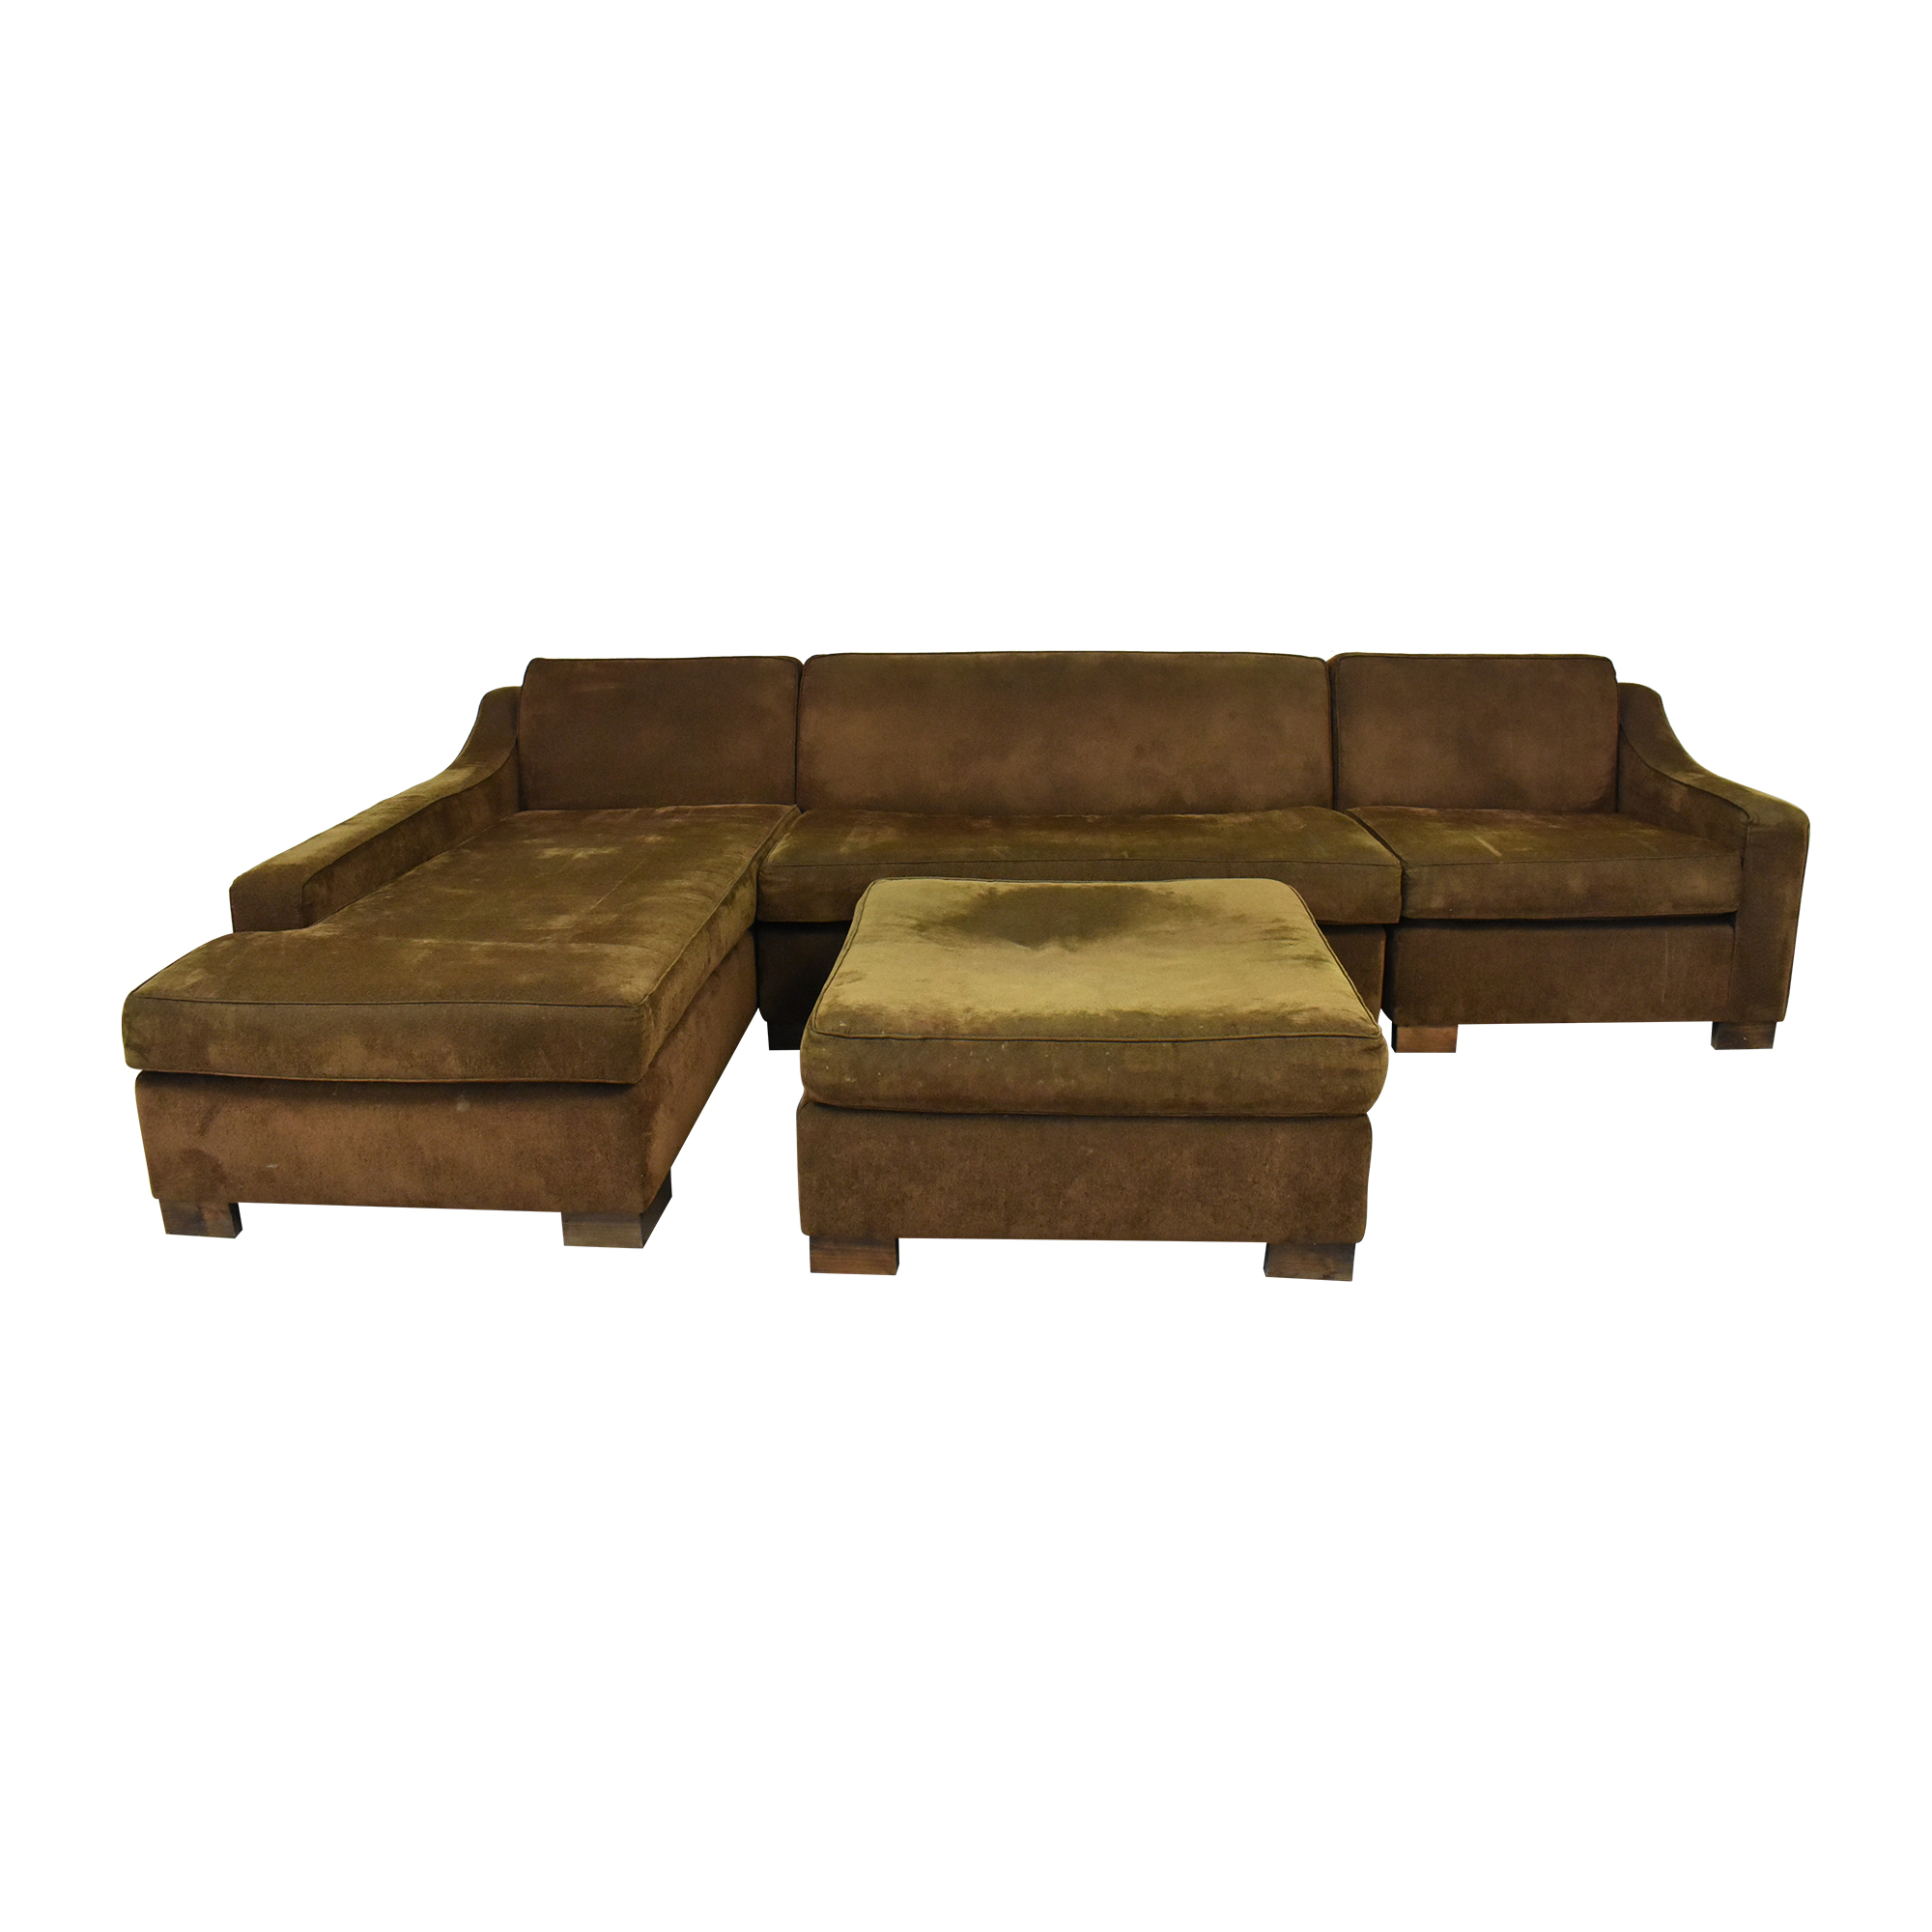 Custom Chaise Sectional Sofa with Ottoman pa